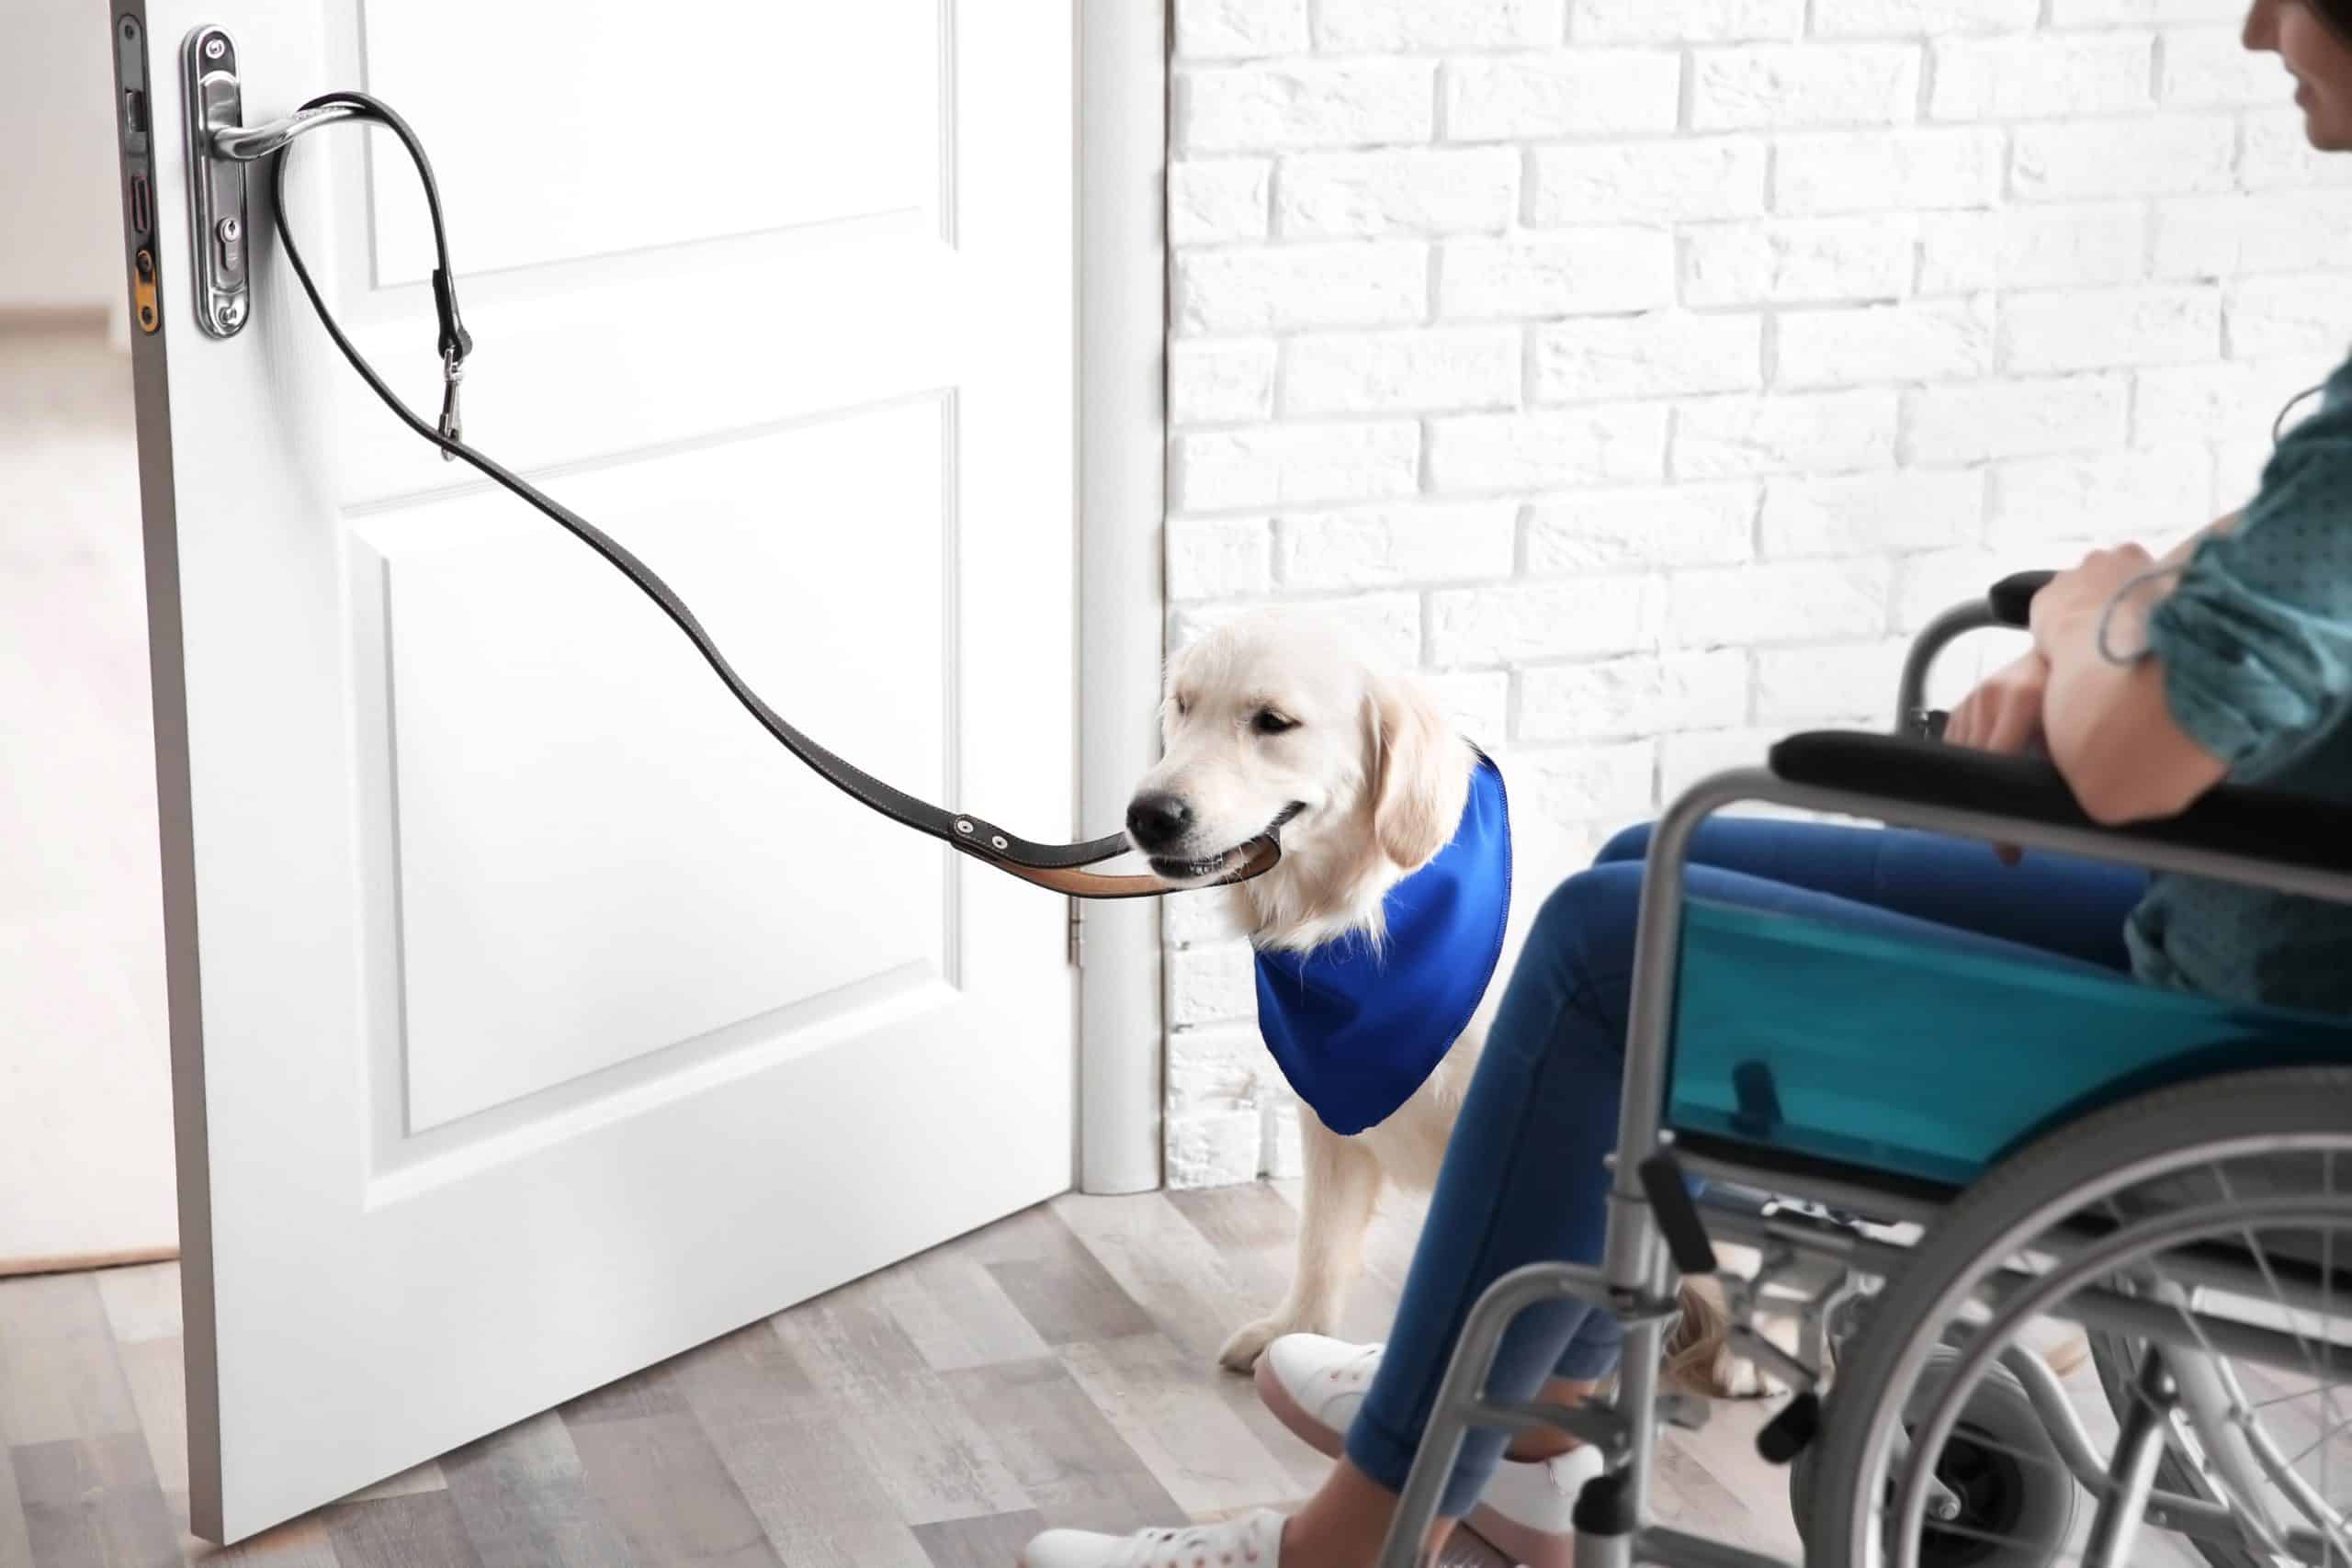 Golden retriever service dog opens door for owner in wheelchair. To prove that your dog is a service dog, you need to confirm that they perform a task that helps you with a disability and be prepared to state what that task is.